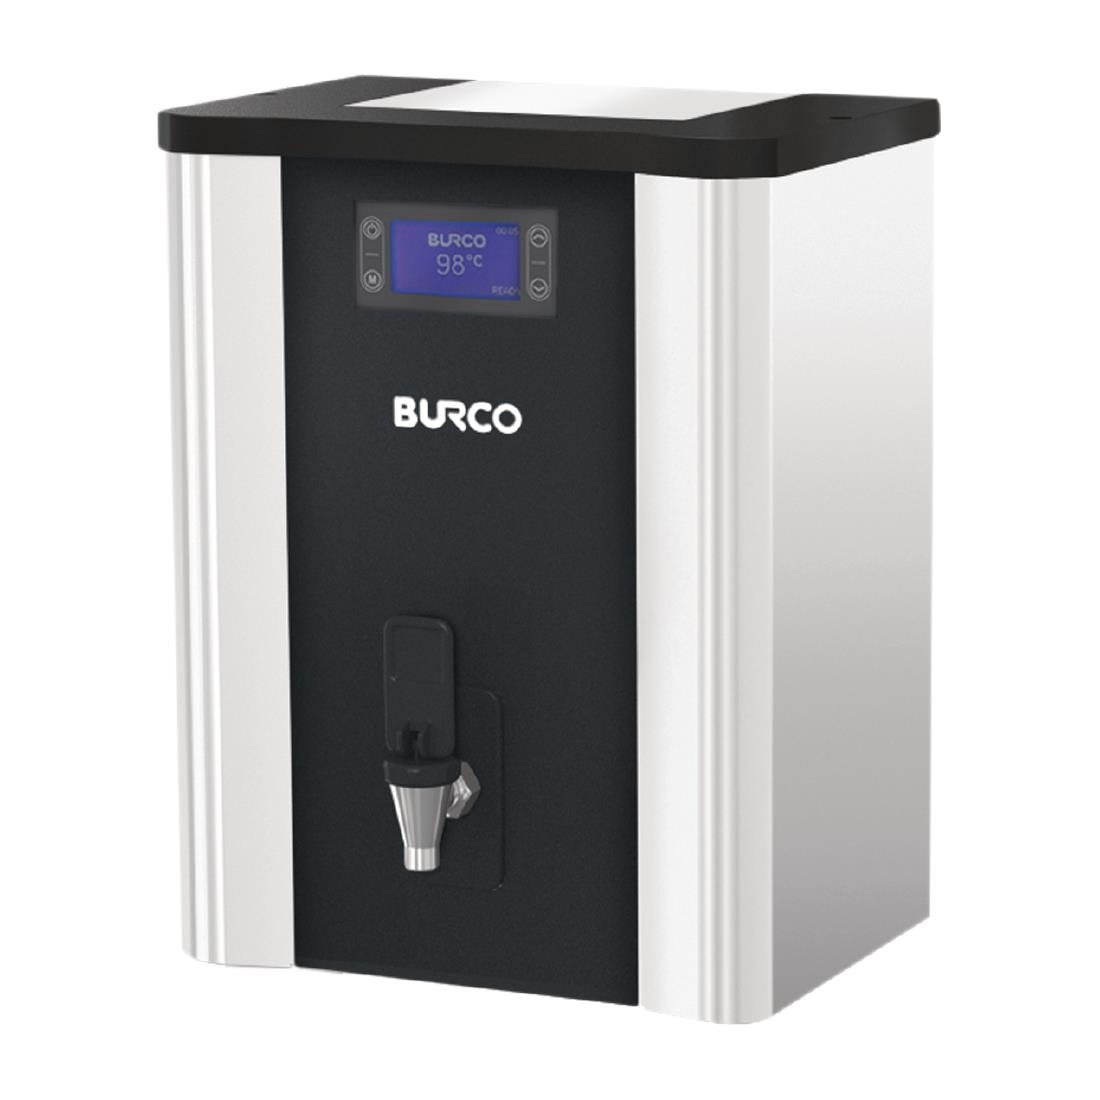 Image of Burco 10Ltr Auto Fill Wall Mounted Water Boiler with Filtration 069818